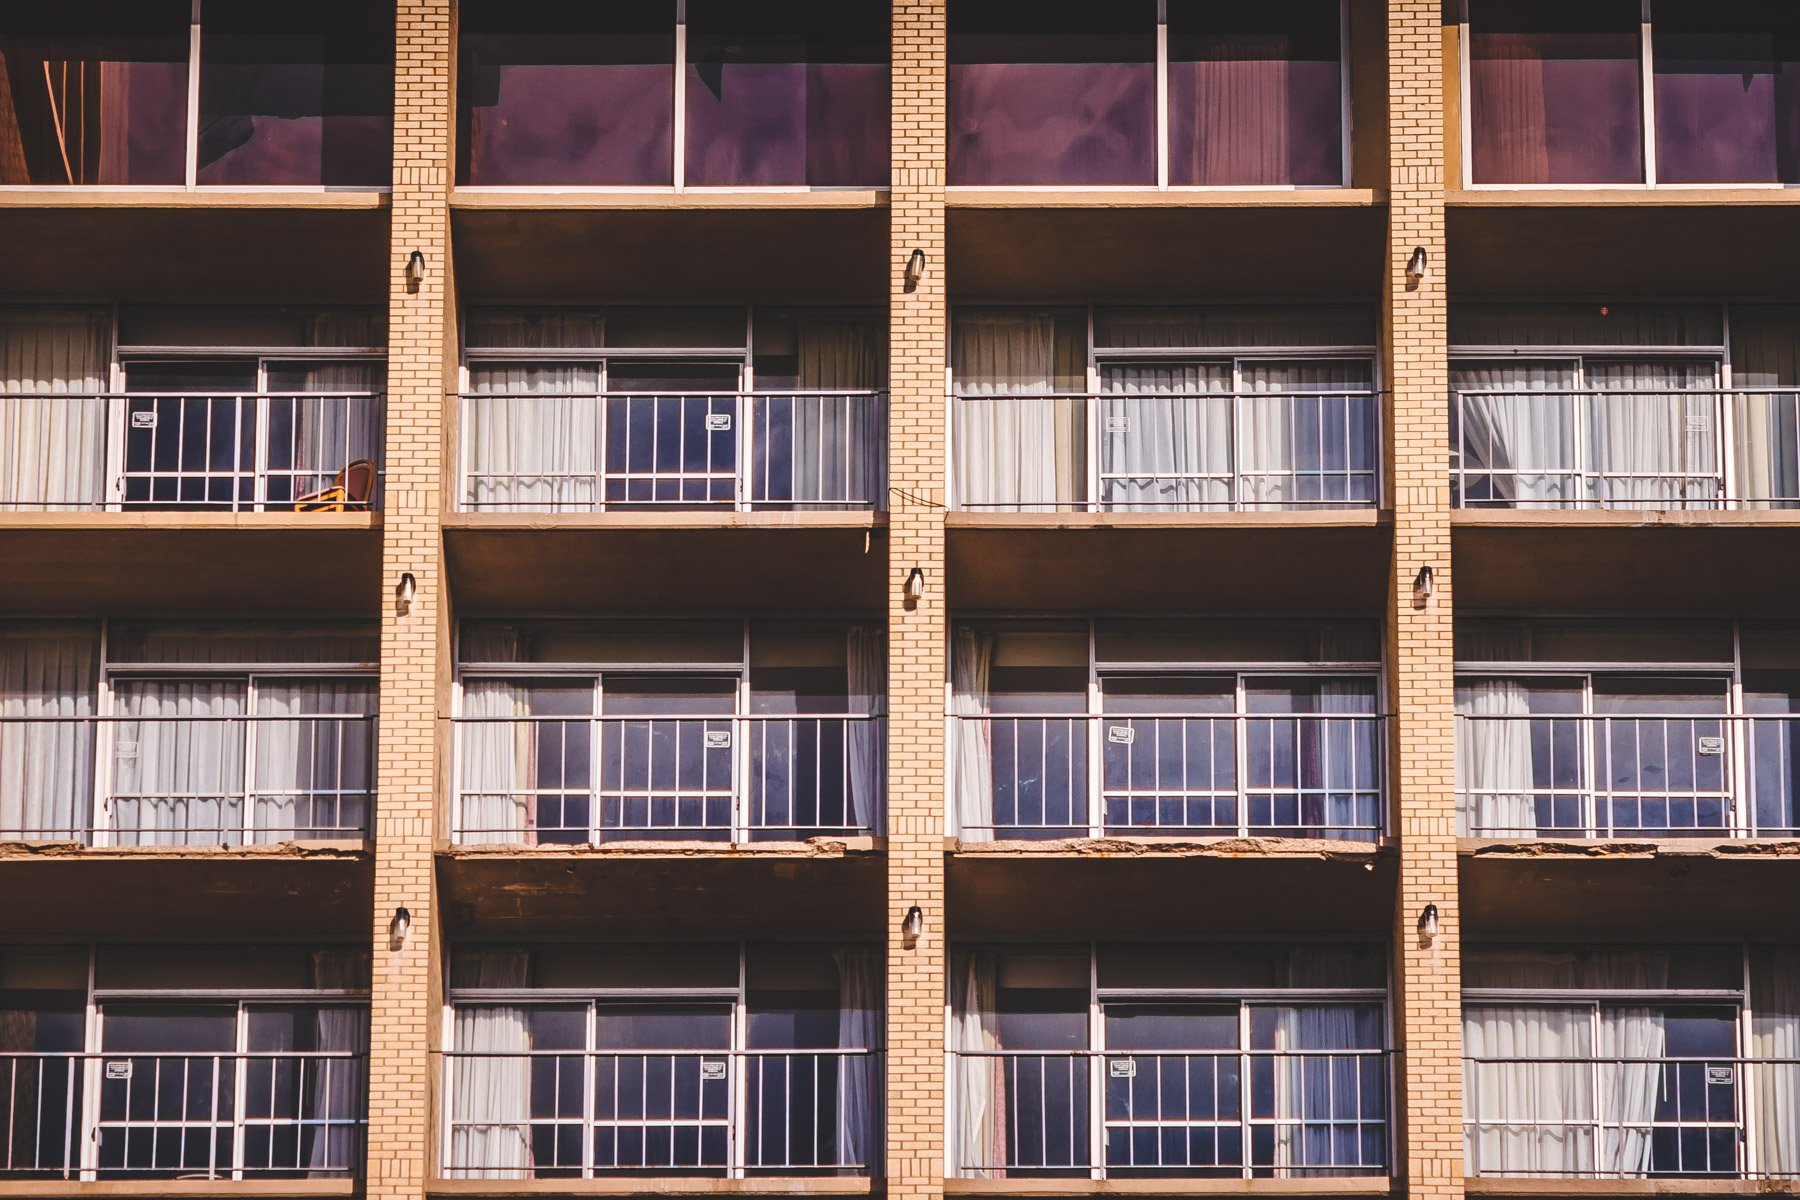 Balconies on the abandoned former Ramada Inn south of Downtown Dallas. Incidentally, this is the hotel that Tina Turner fled to when she finally escaped the abusive clutches of Ike Turner.